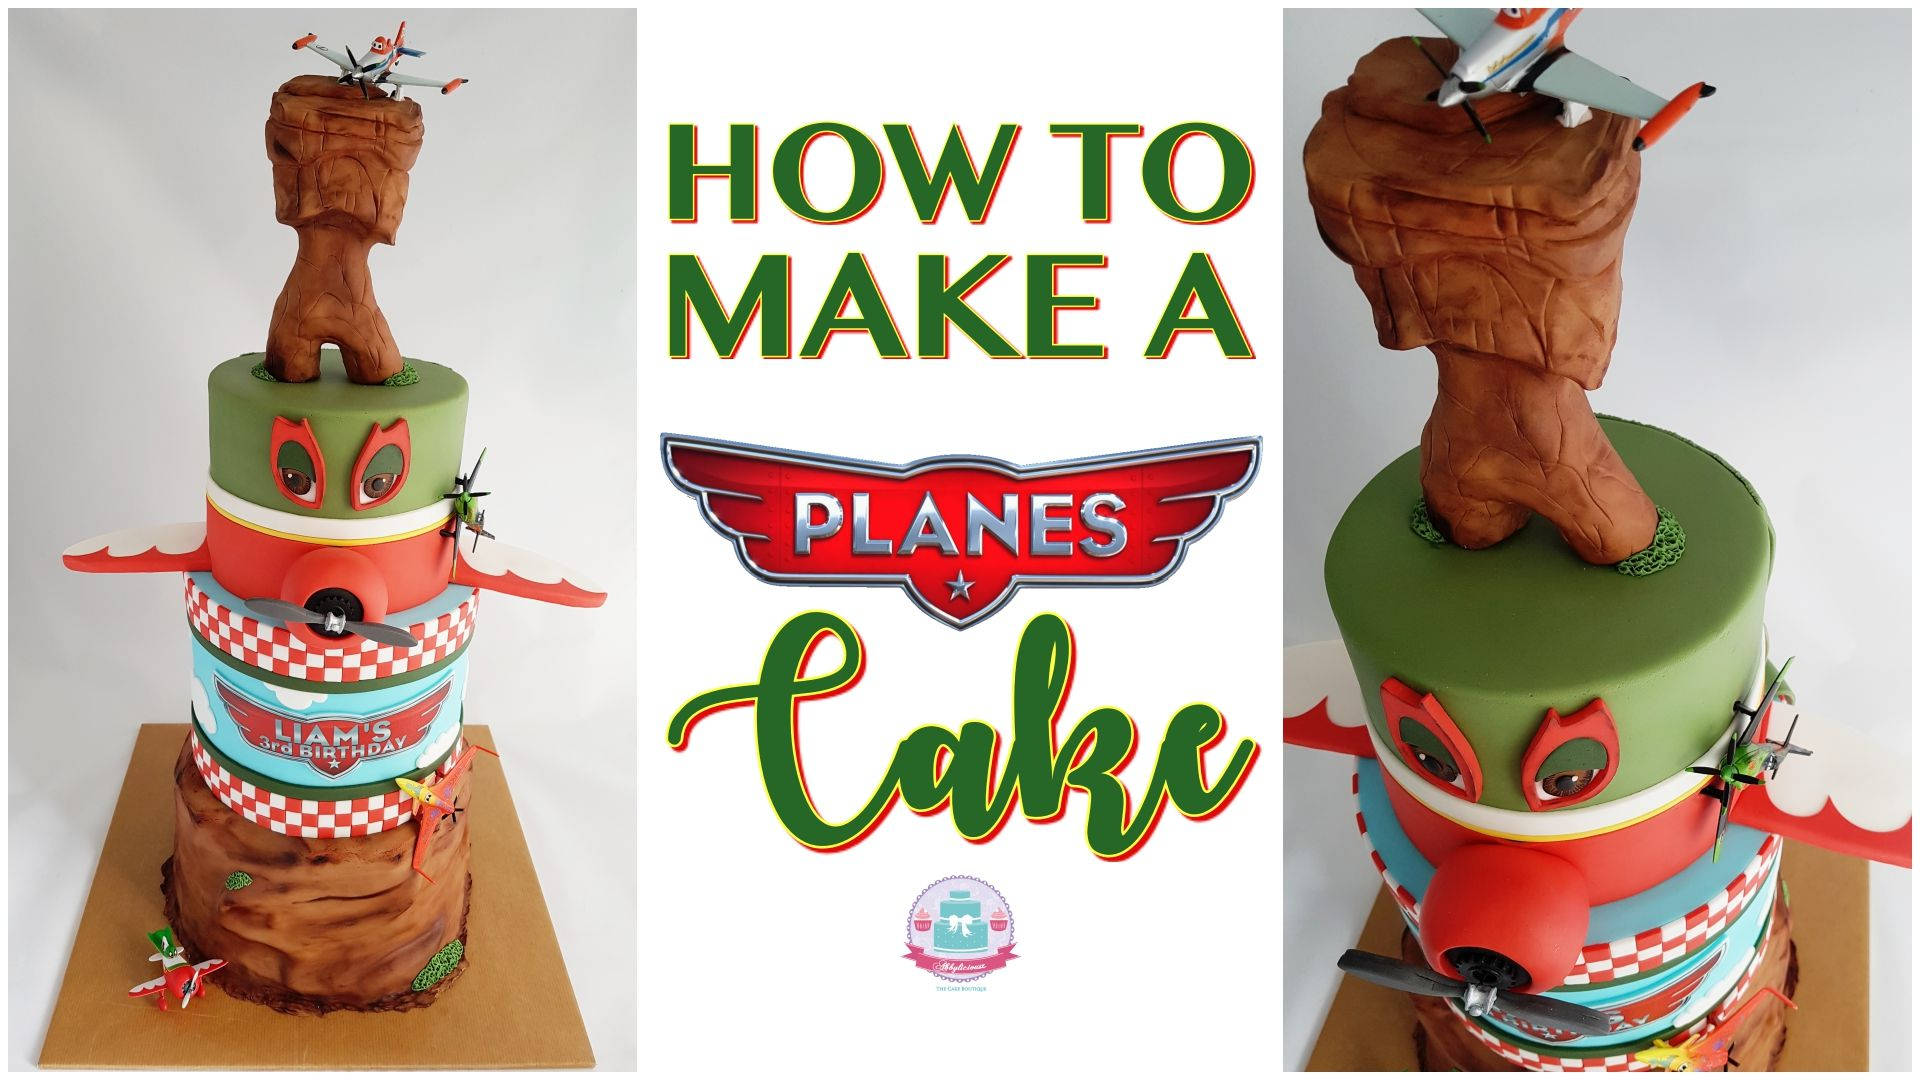 Planes Cake (Youtube Tutorial)